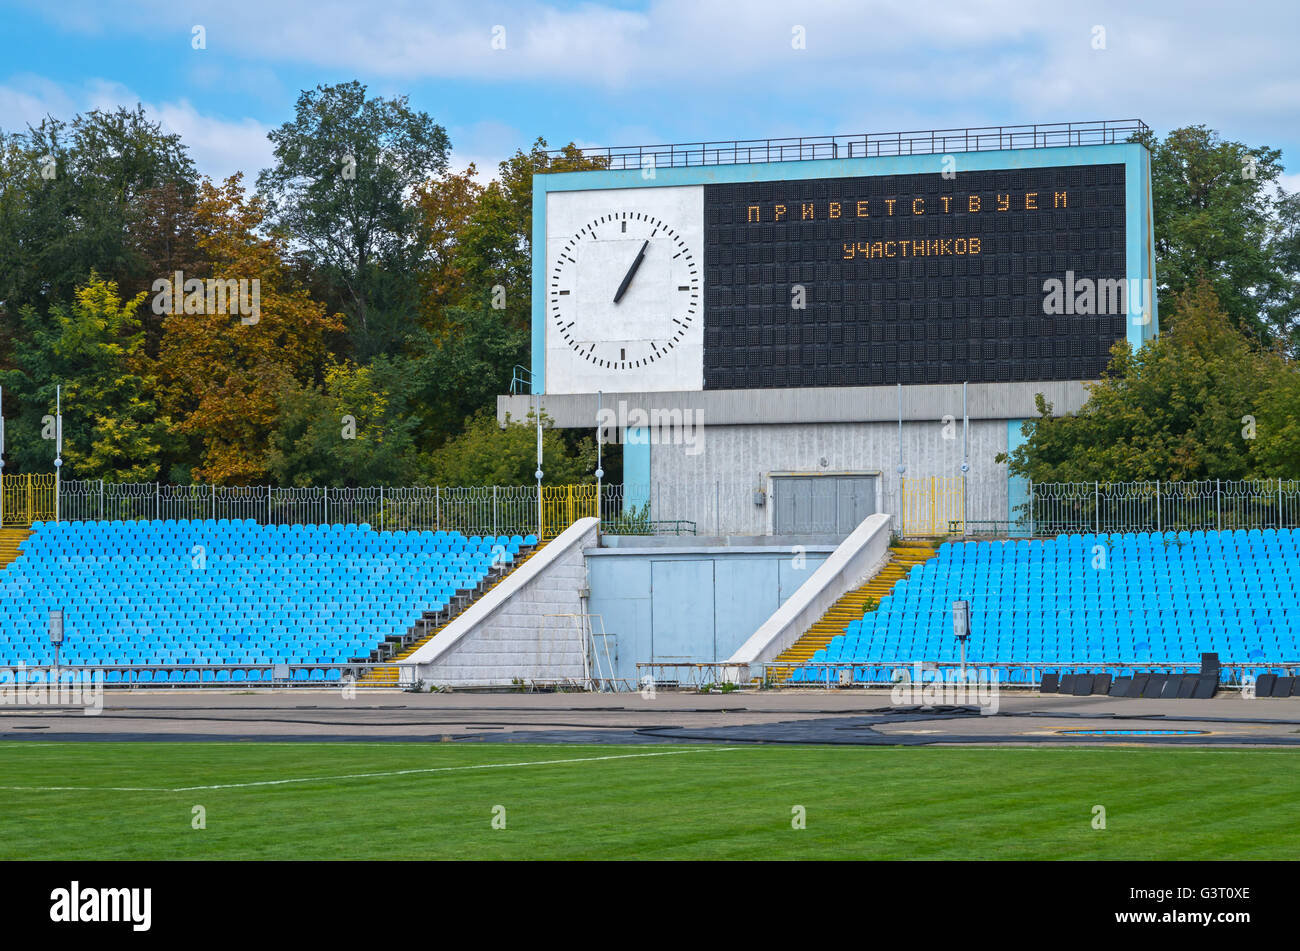 The display device and the entrance gates to the stadium in a provincial town - Stock Image